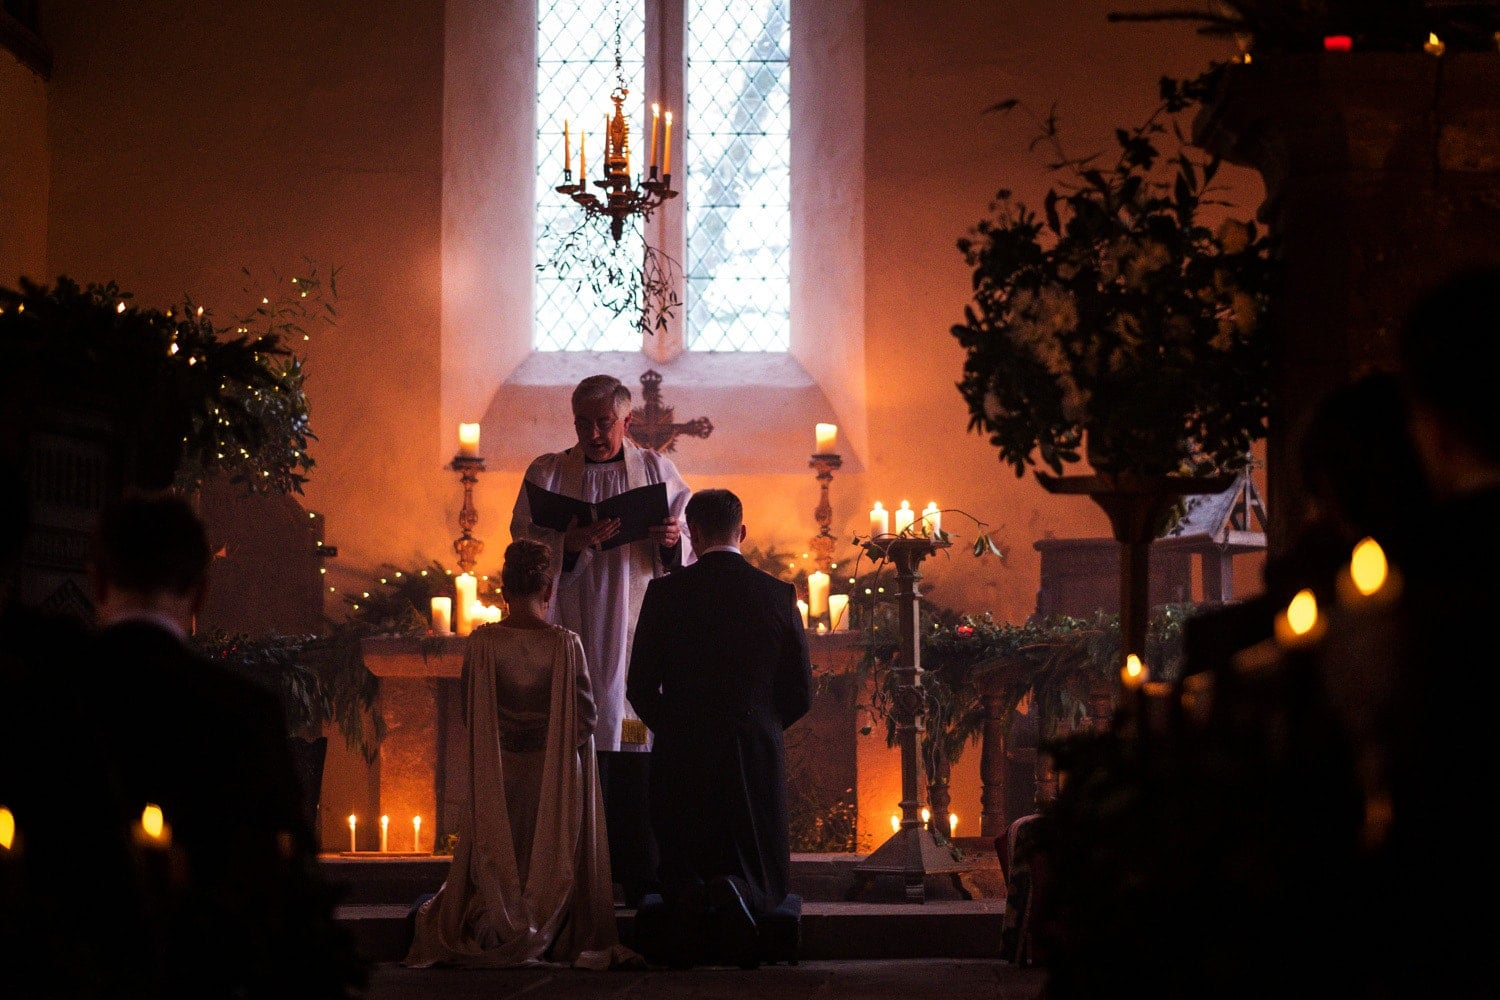 Candle lit marriage ceremony